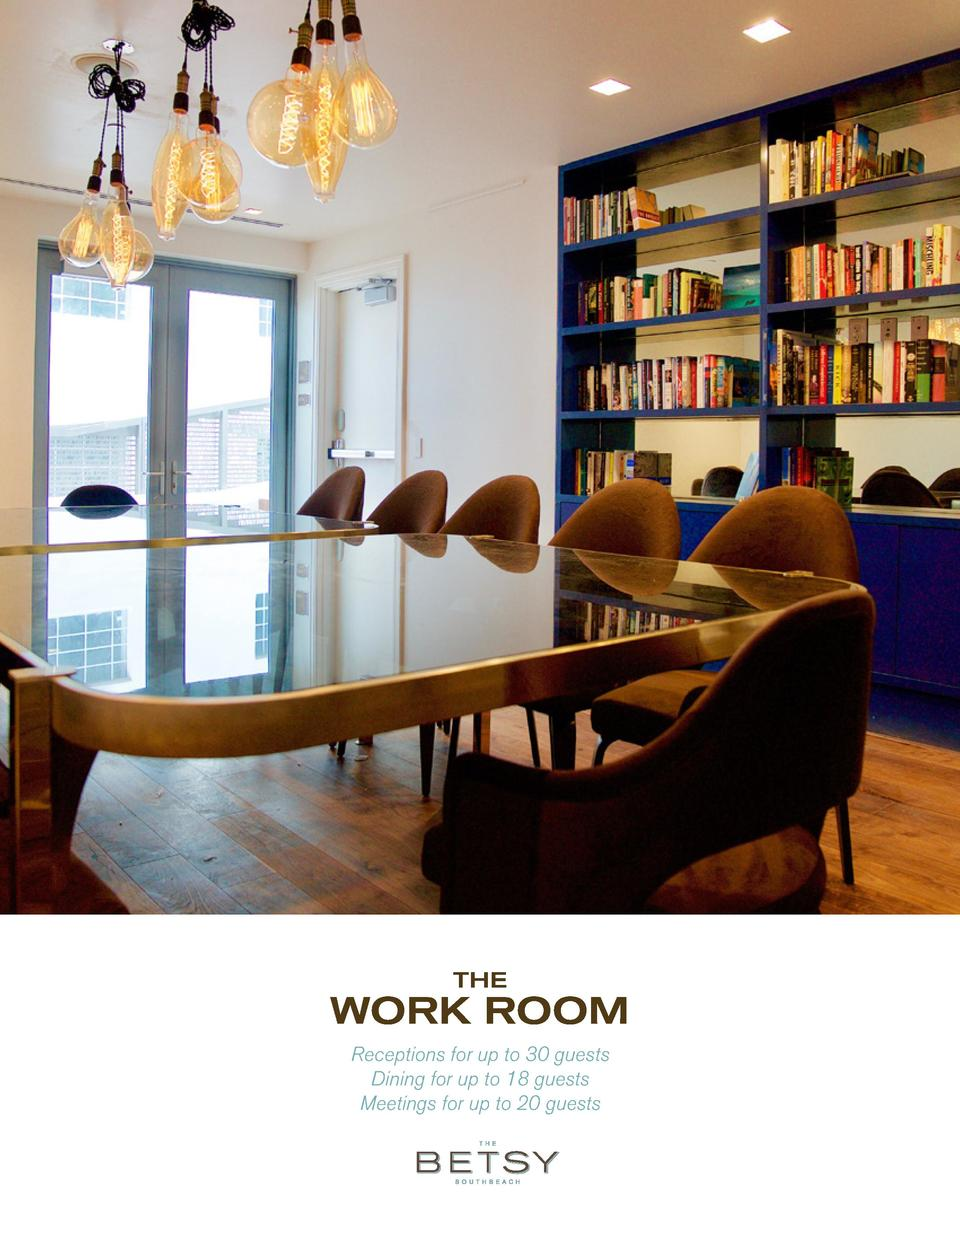 THE  WORK ROOM Receptions for up to 30 guests Dining for up to 18 guests Meetings for up to 20 guests